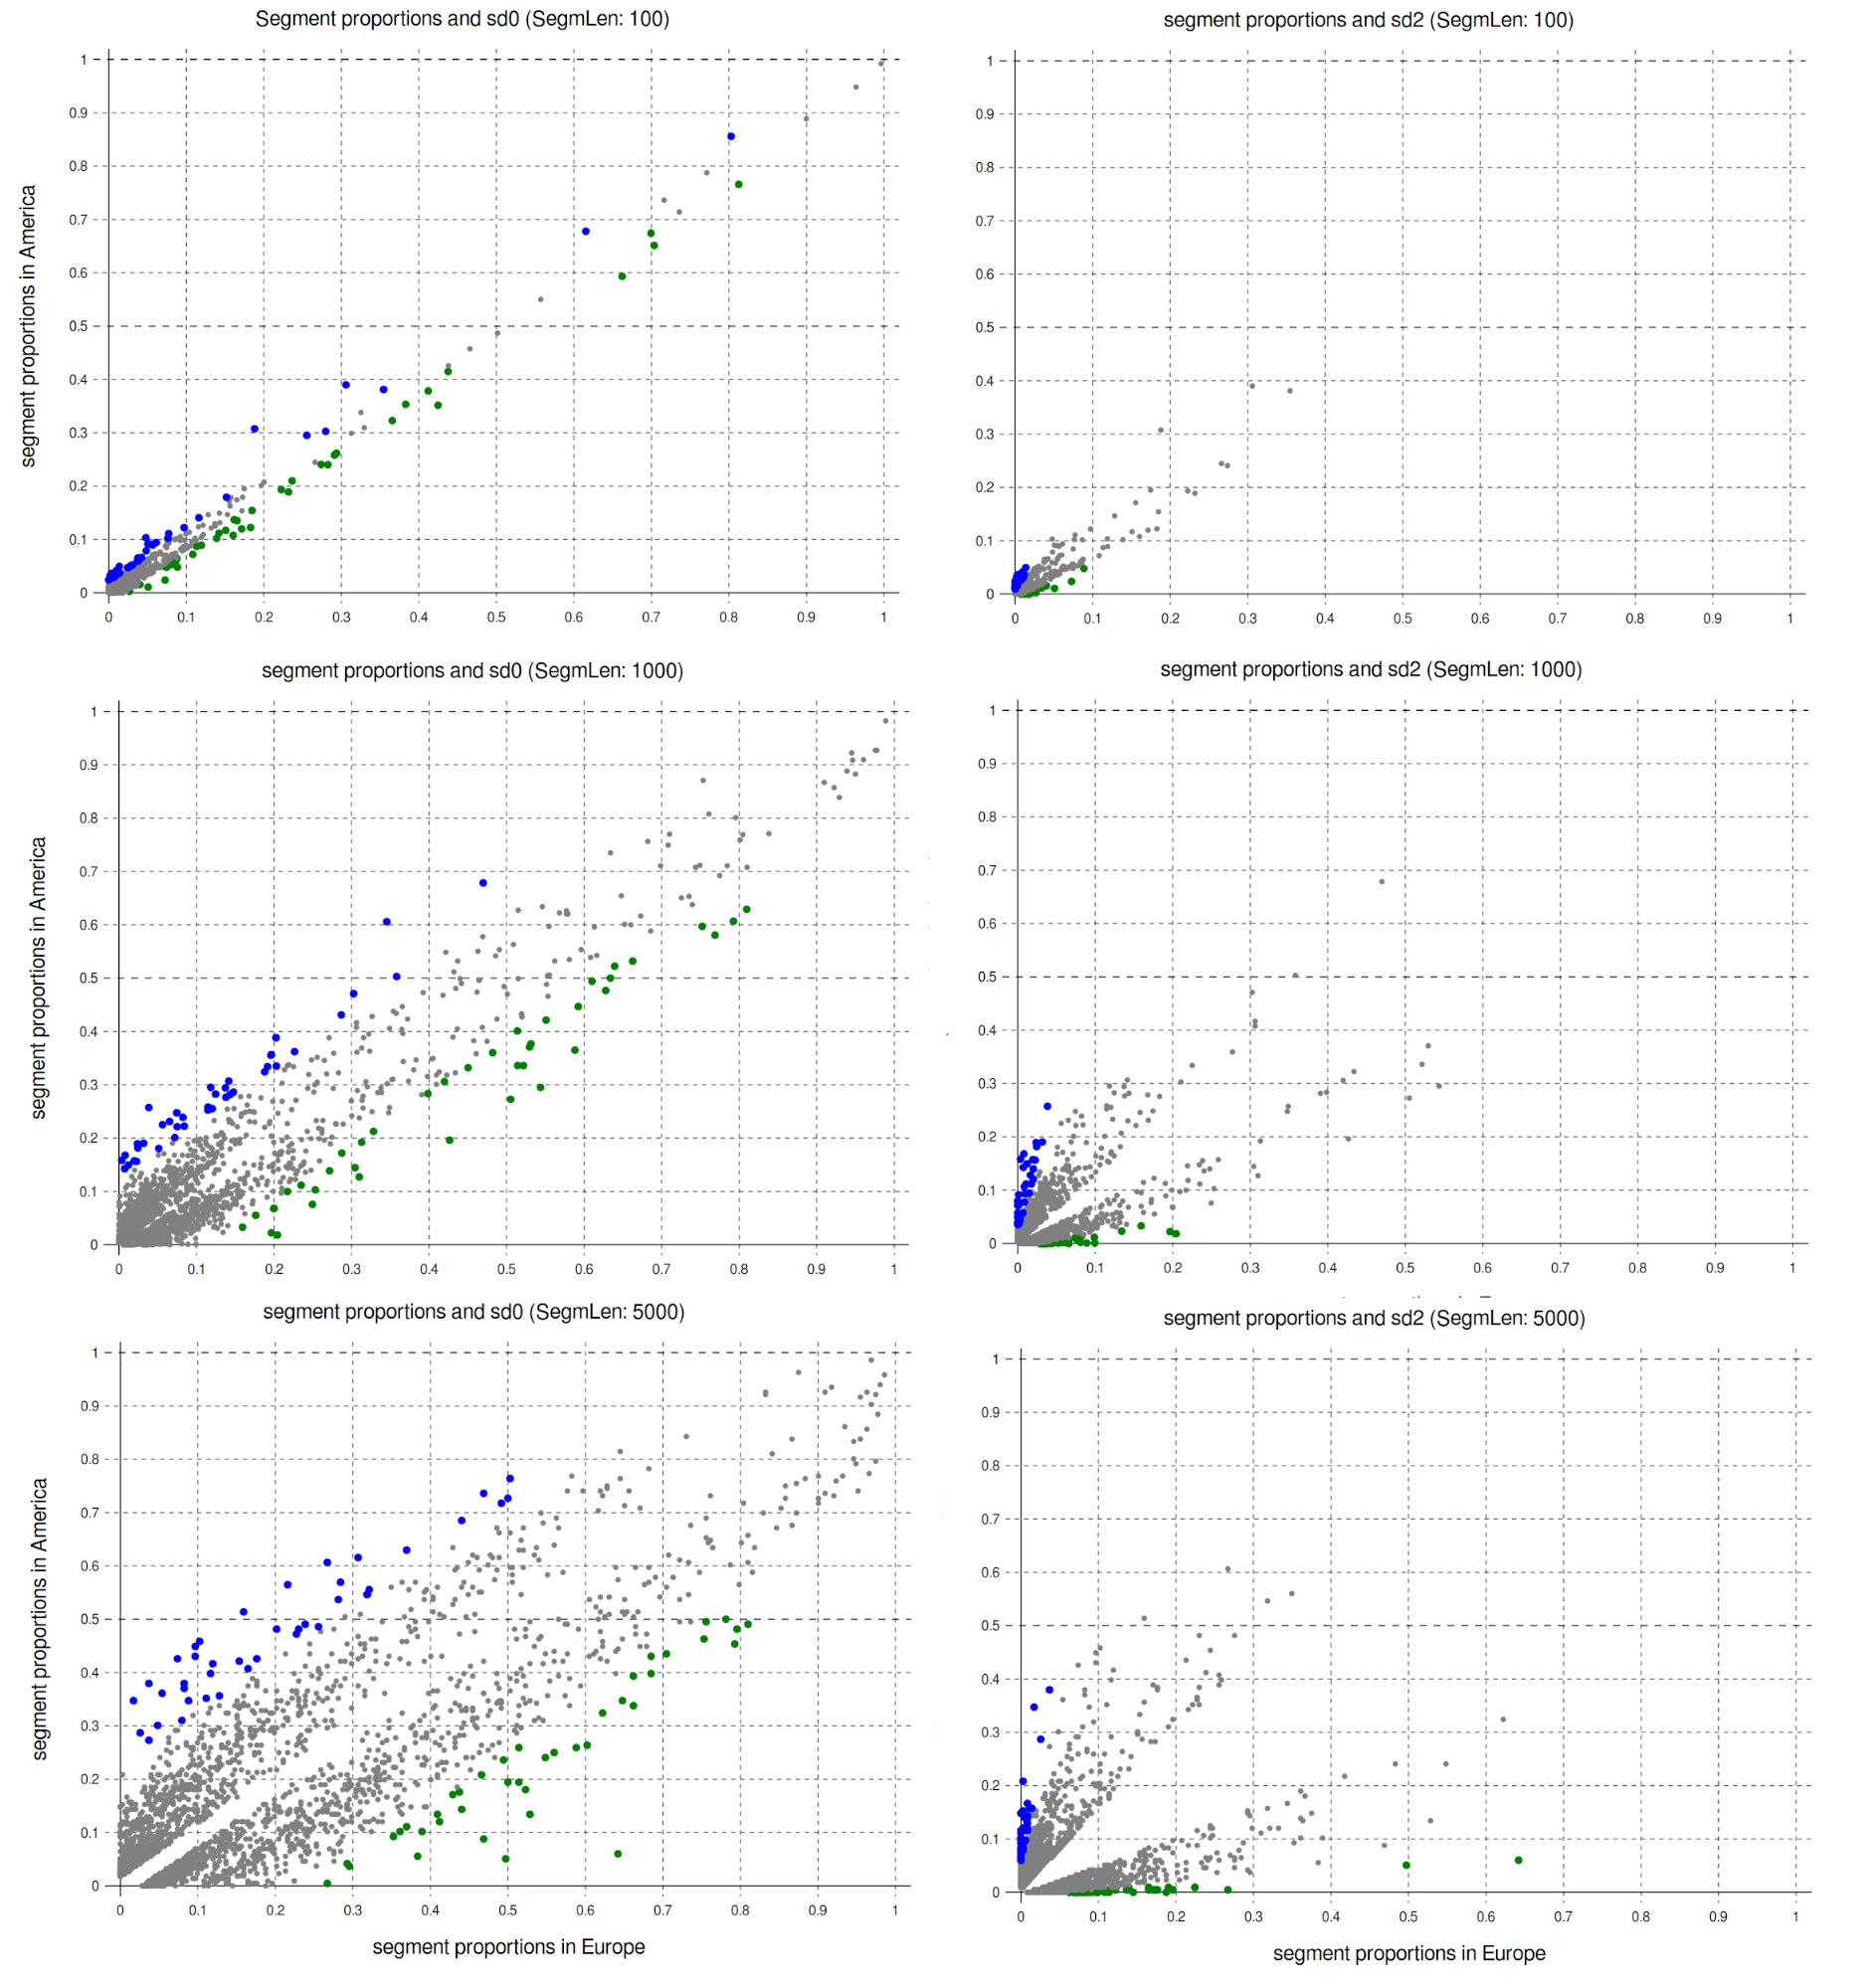 Segment proportions and Zeta scores for two Zeta variants (left: Burrows Zeta; right: log2-Zeta) and three segment sizes (100, 1000, 5000). Each dot is one word, 500 top Zeta words are shown. Colors indicate the words with the 40 highest (green) and lowest (blue) Zeta scores.